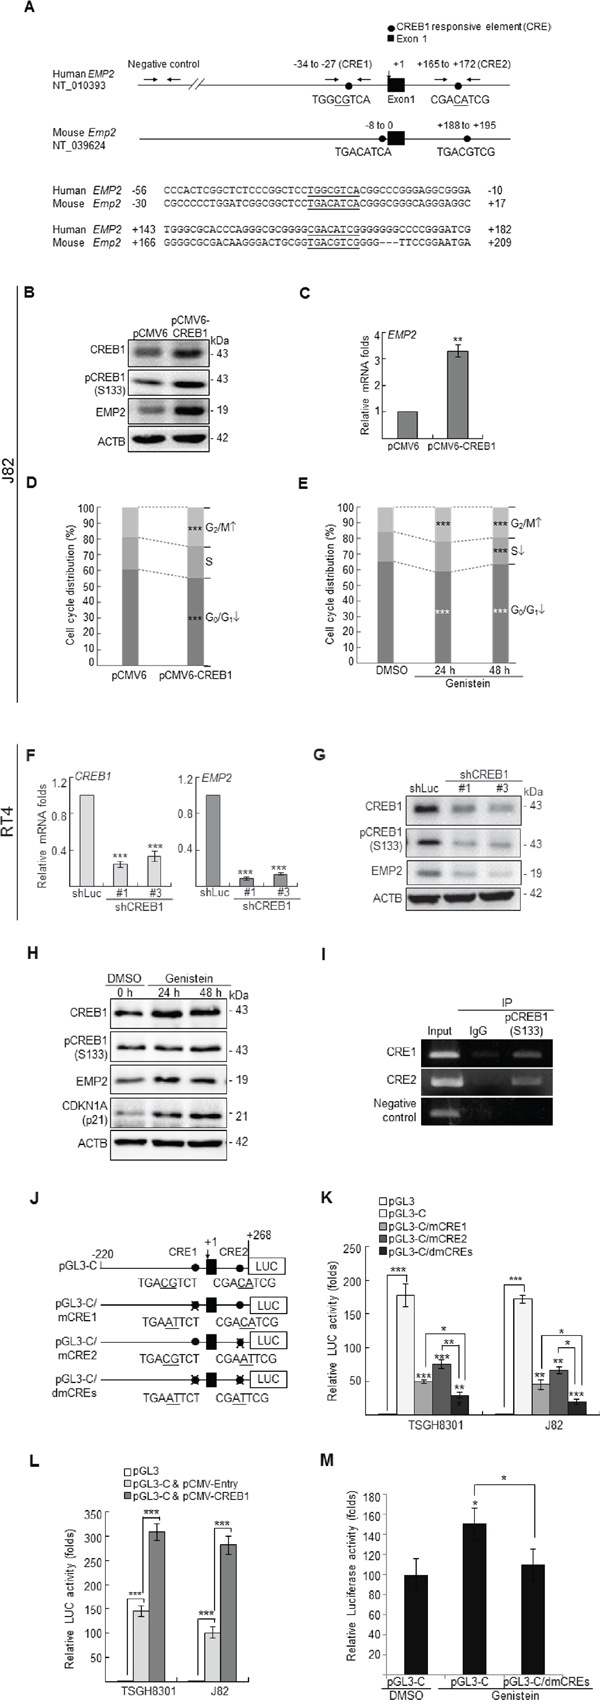 Genistein upregulated CREB1 and pCREB1(S133) protein levels, and pCREB1(Ser133) transactivates EMP2 gene in UBUC-derived cells.